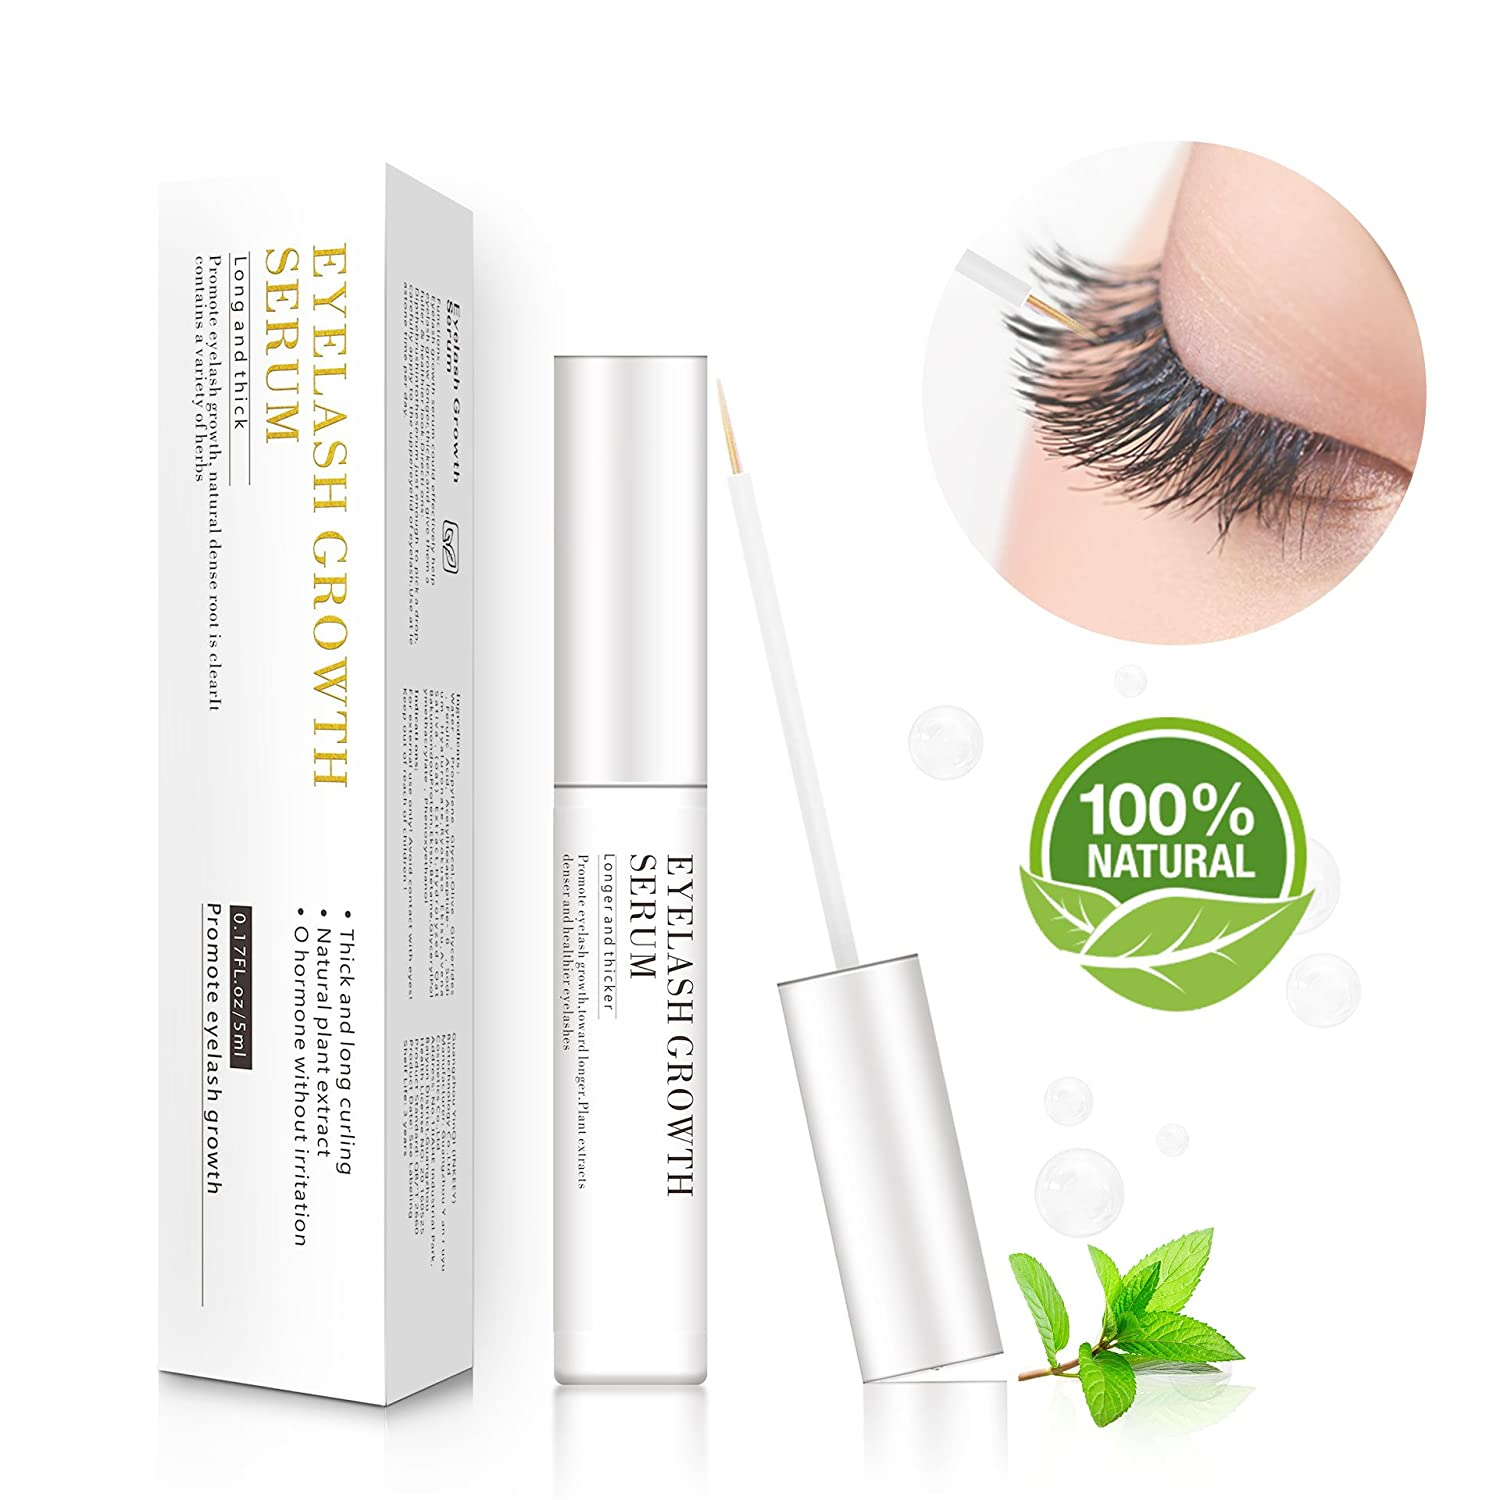 Eyelash Serum & Eyebrow Serum 5ml - For lengthening the eyelashes and eyebrows, more density and a more sensual, darker color of the eyelashes